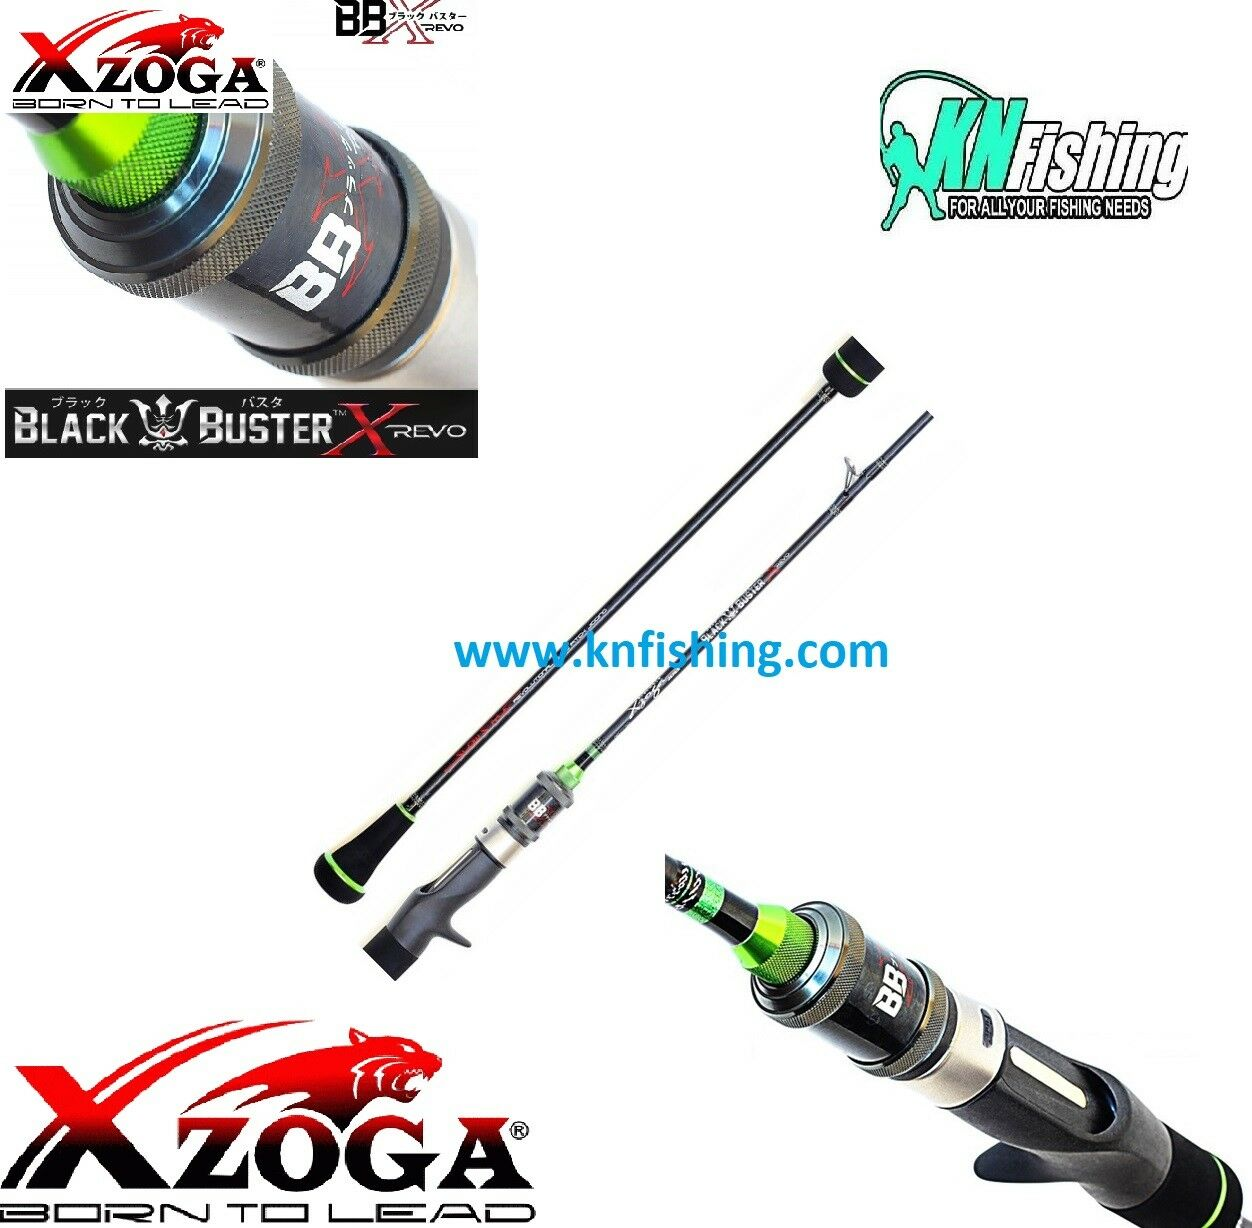 XZOGA BLACK BUSTER REVO BBX SFC-6634 SLOW JIGGING ROD 300G